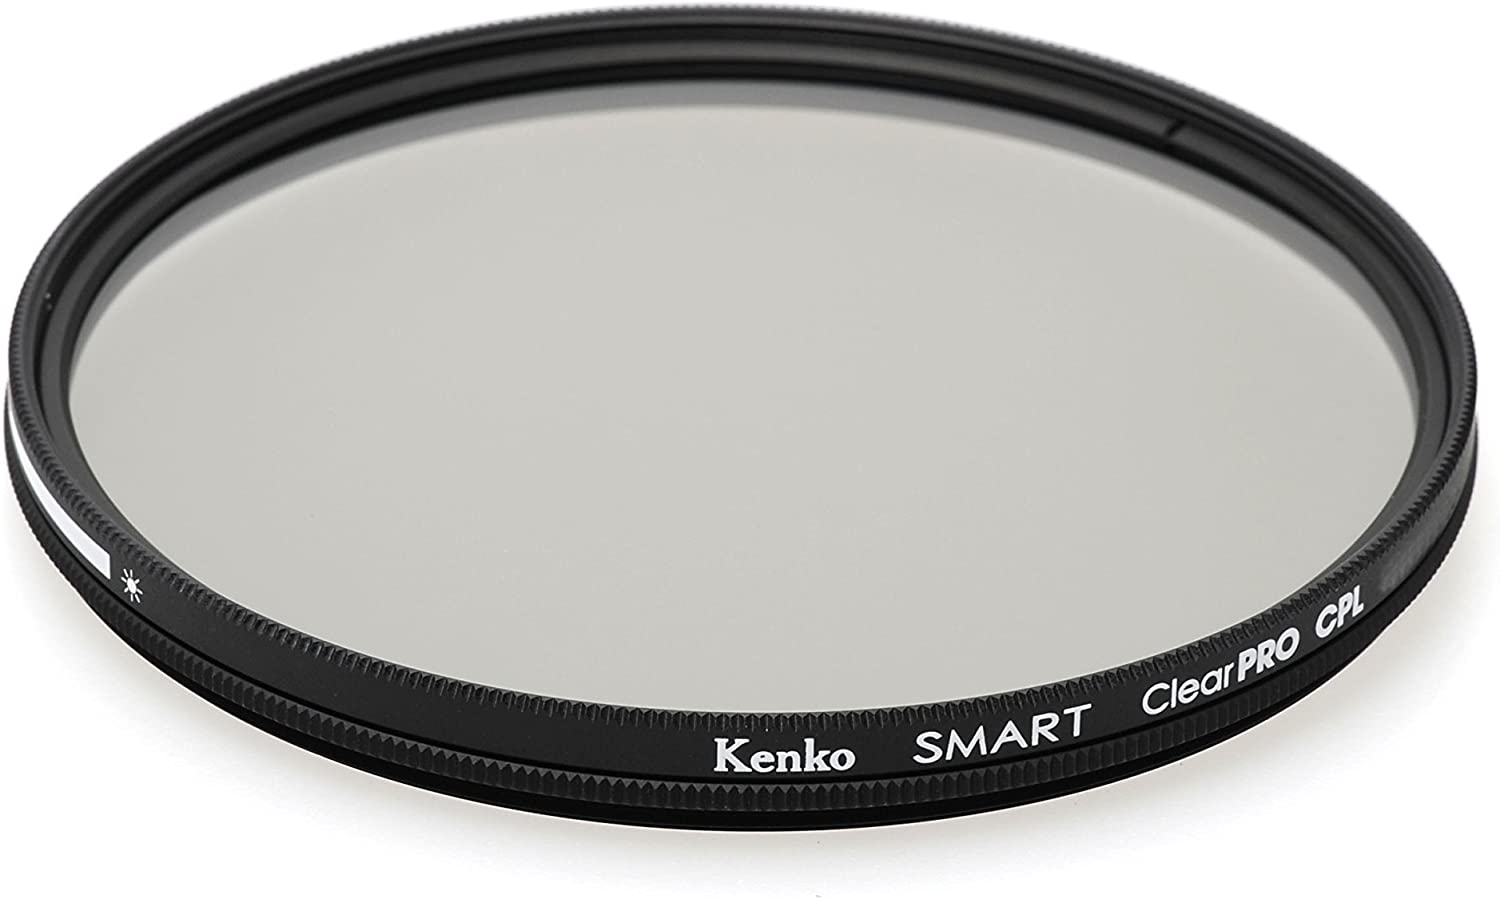 UV Filter for Camera Kenko 58 mm Smart Clearpro CPL